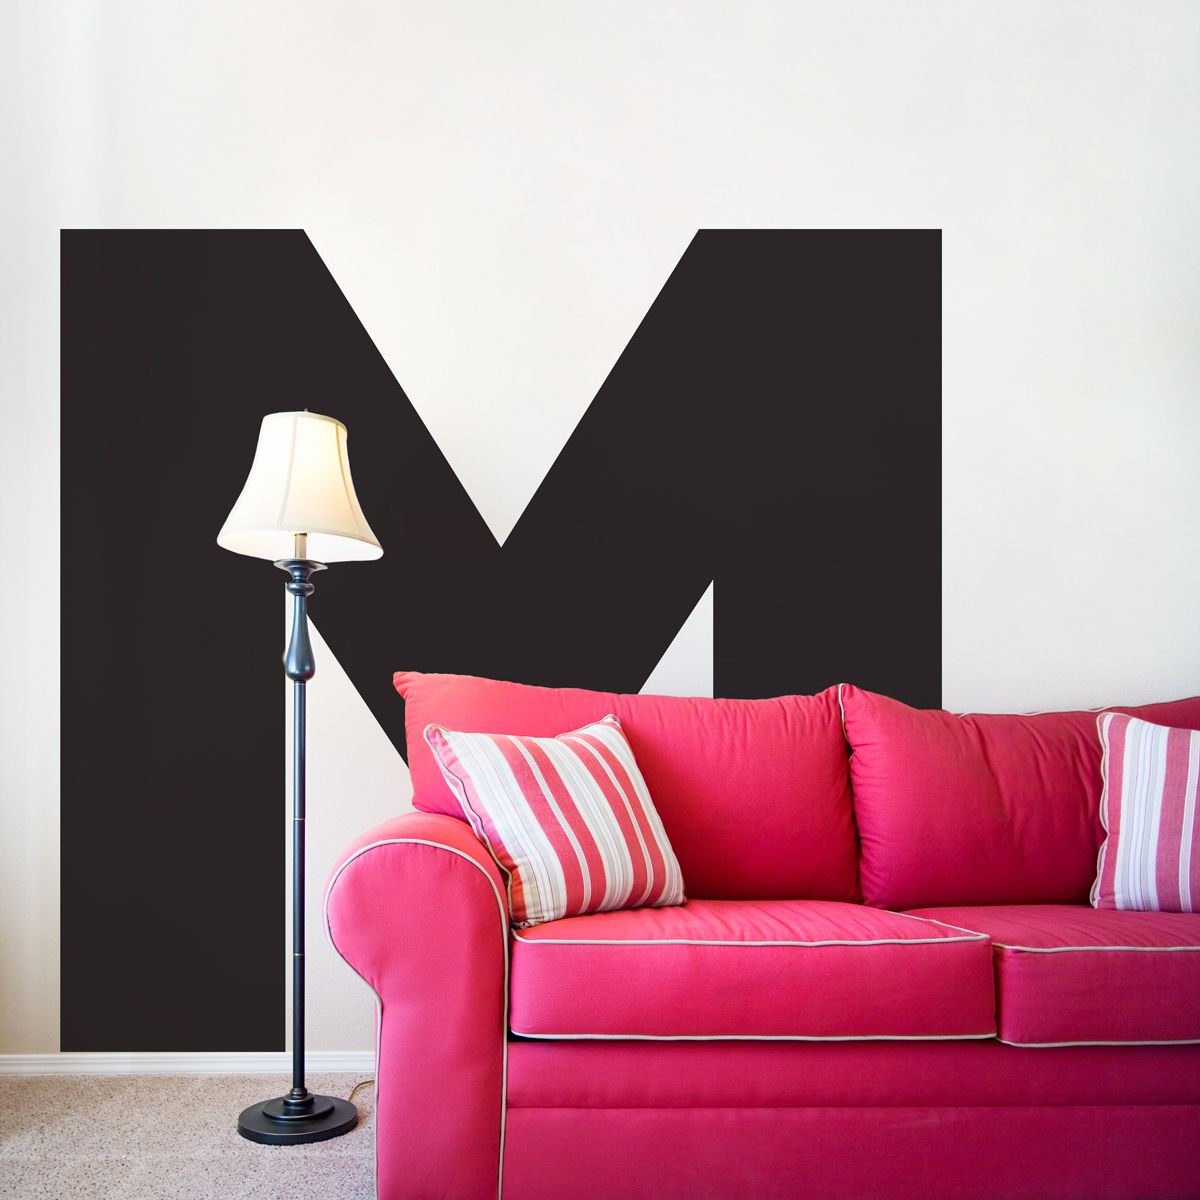 Large Letter Wall Decal - Pretty much perfect for absolutely any room, even  a studio